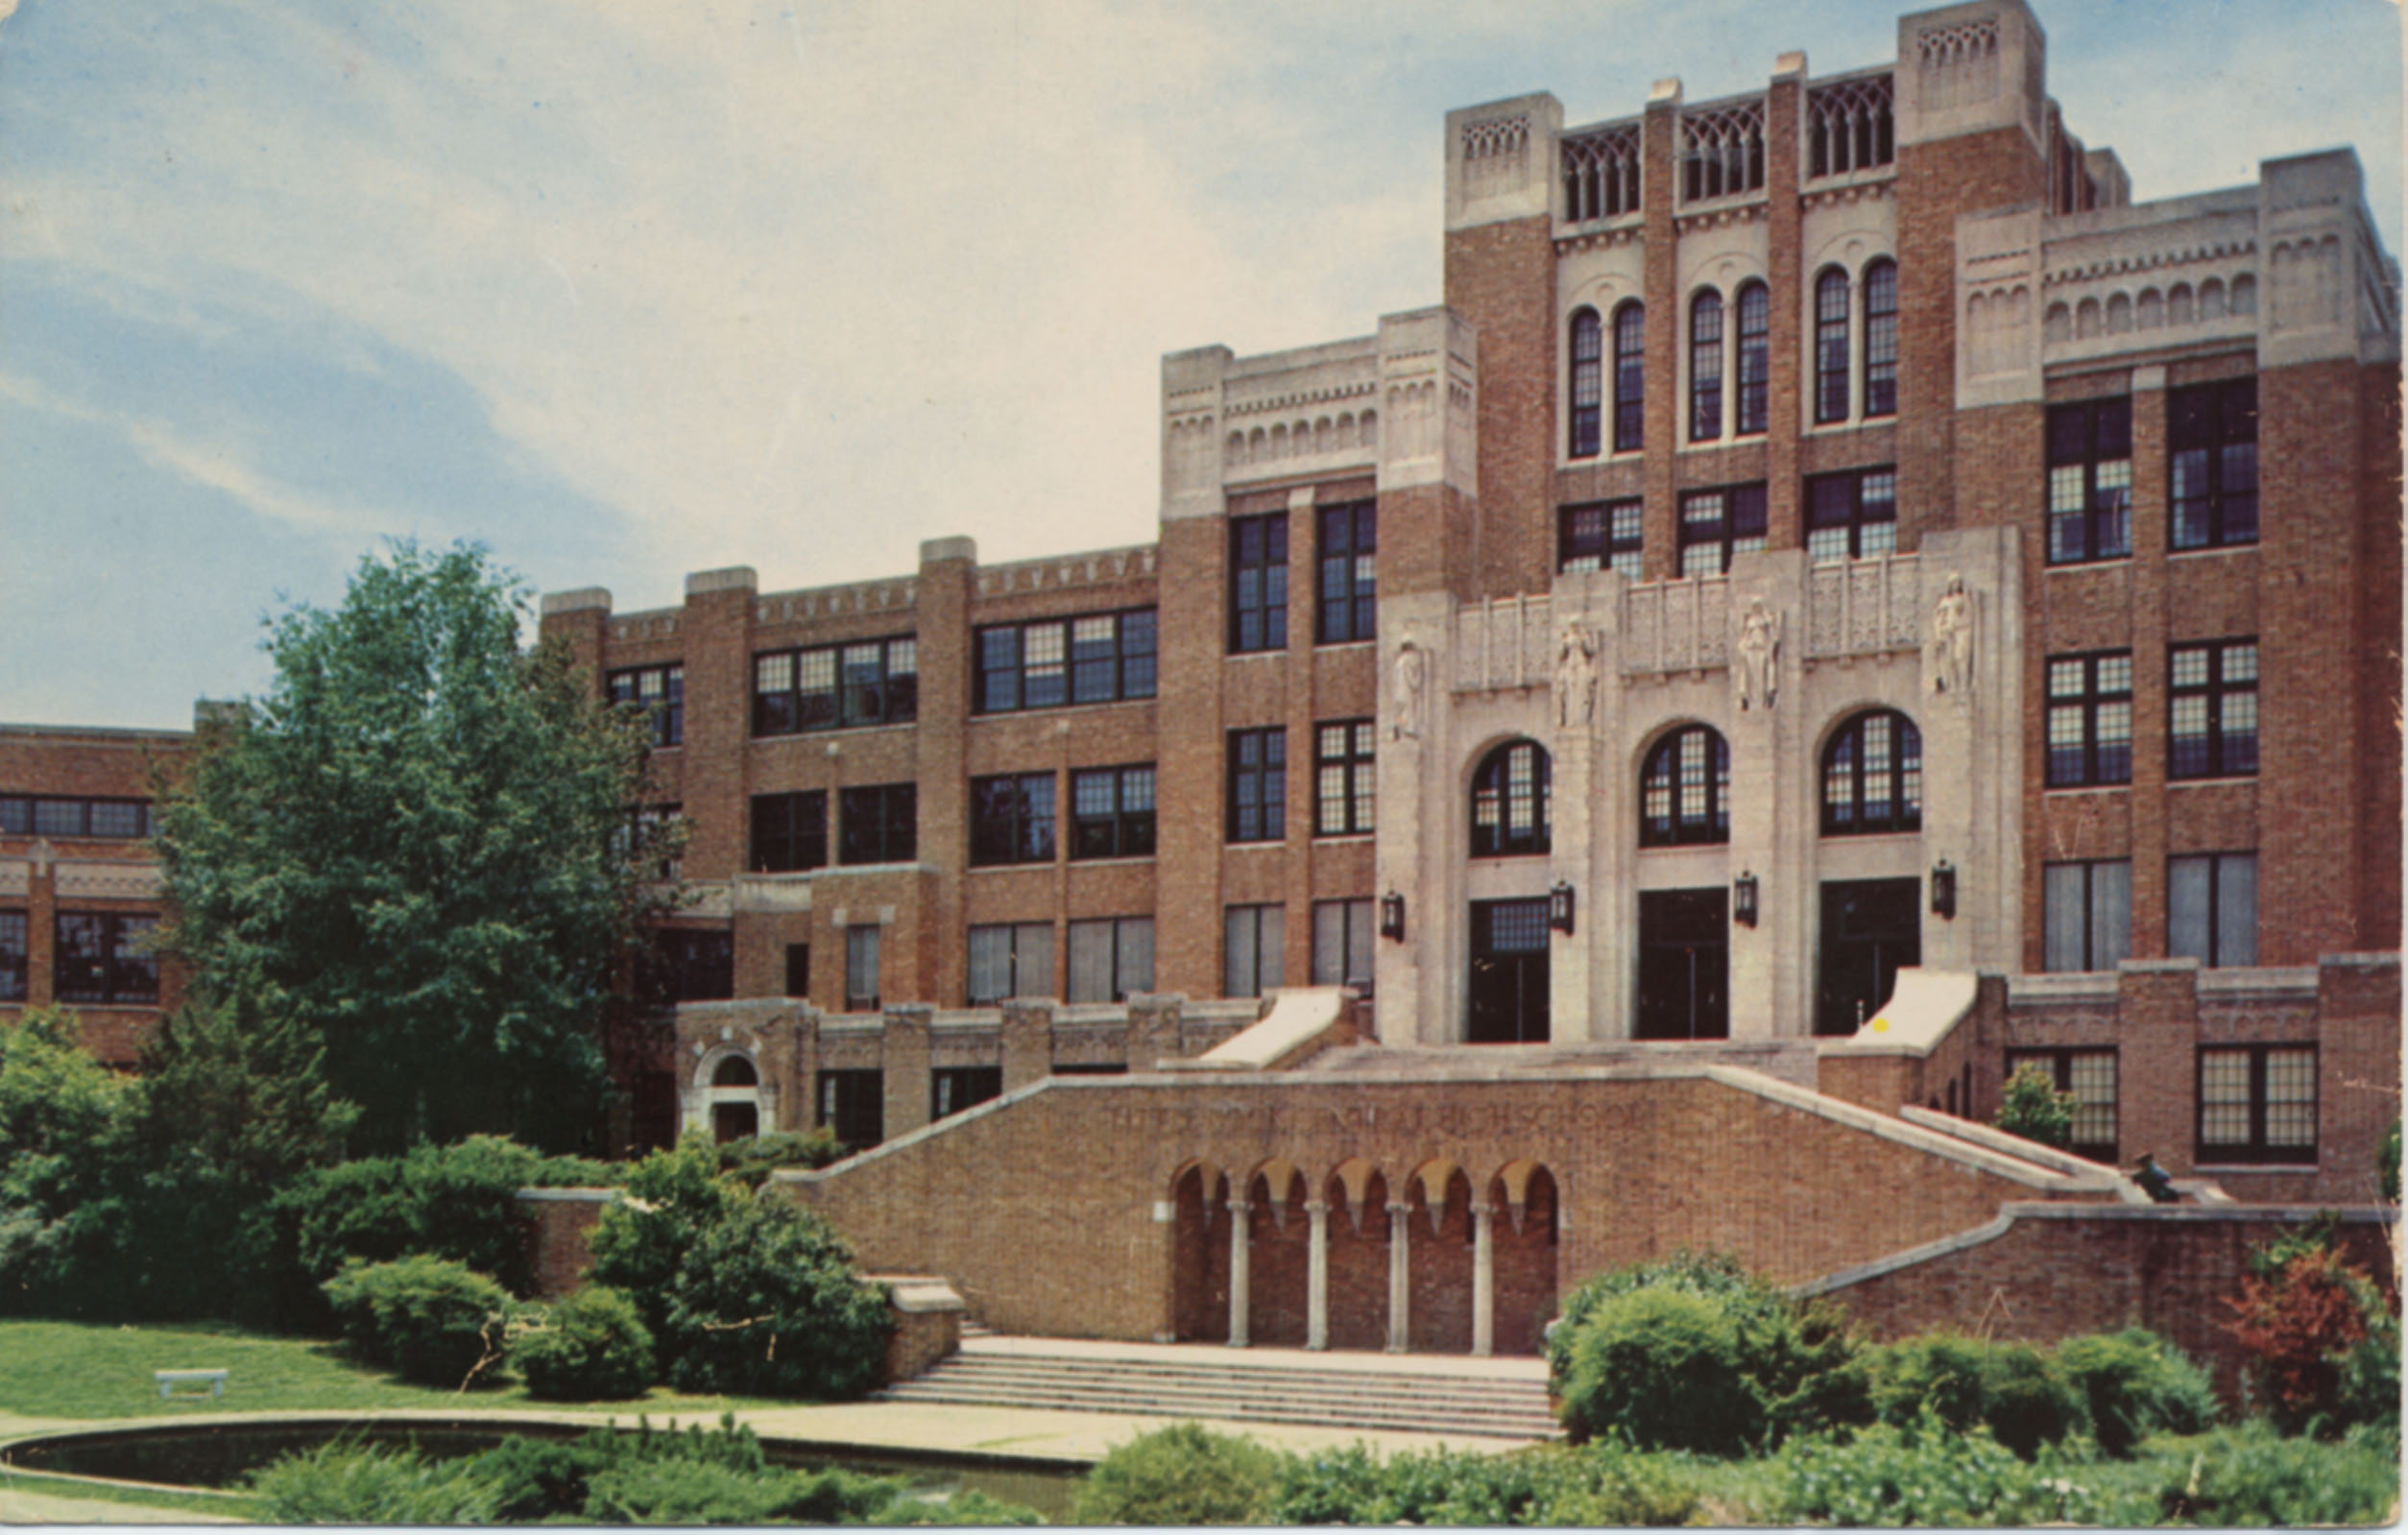 Postcard of Little Rock's Central High School